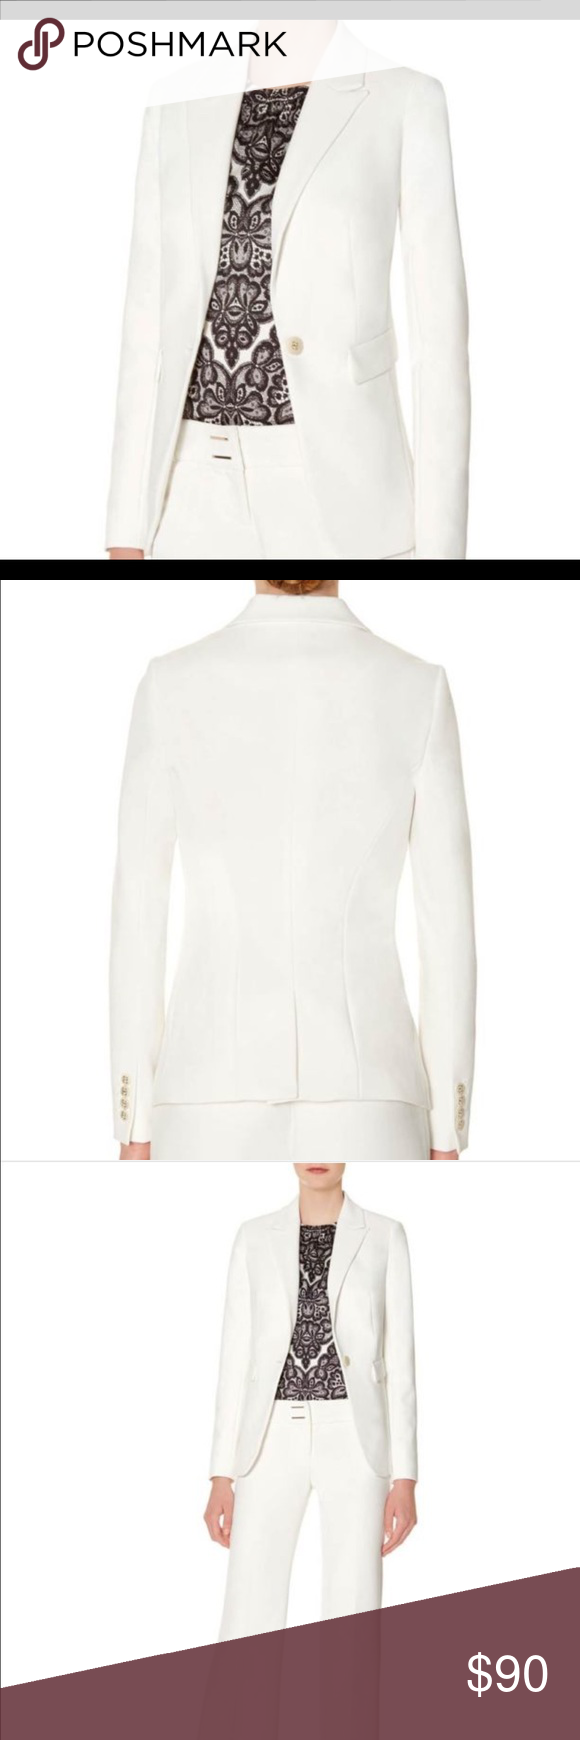 "White the limited scandal collection blazer The Limited collection inspired by SCANDAL embodies the aesthetic of Olivia Pope for real-life Gladiators and everyday fashionistas. Elevated fabrics and details have a luxurious look and feel for powerfully sophisticated styling! Clean, rich woven fabric Peaked lapels, 1-button front Flap front pockets Full sleeves with decorative 4-button cuffs Fully lined From centerback to hem: Regular=25"" Outshell: 63% Polyester/ 33% Viscose/ 4% Spandex…"